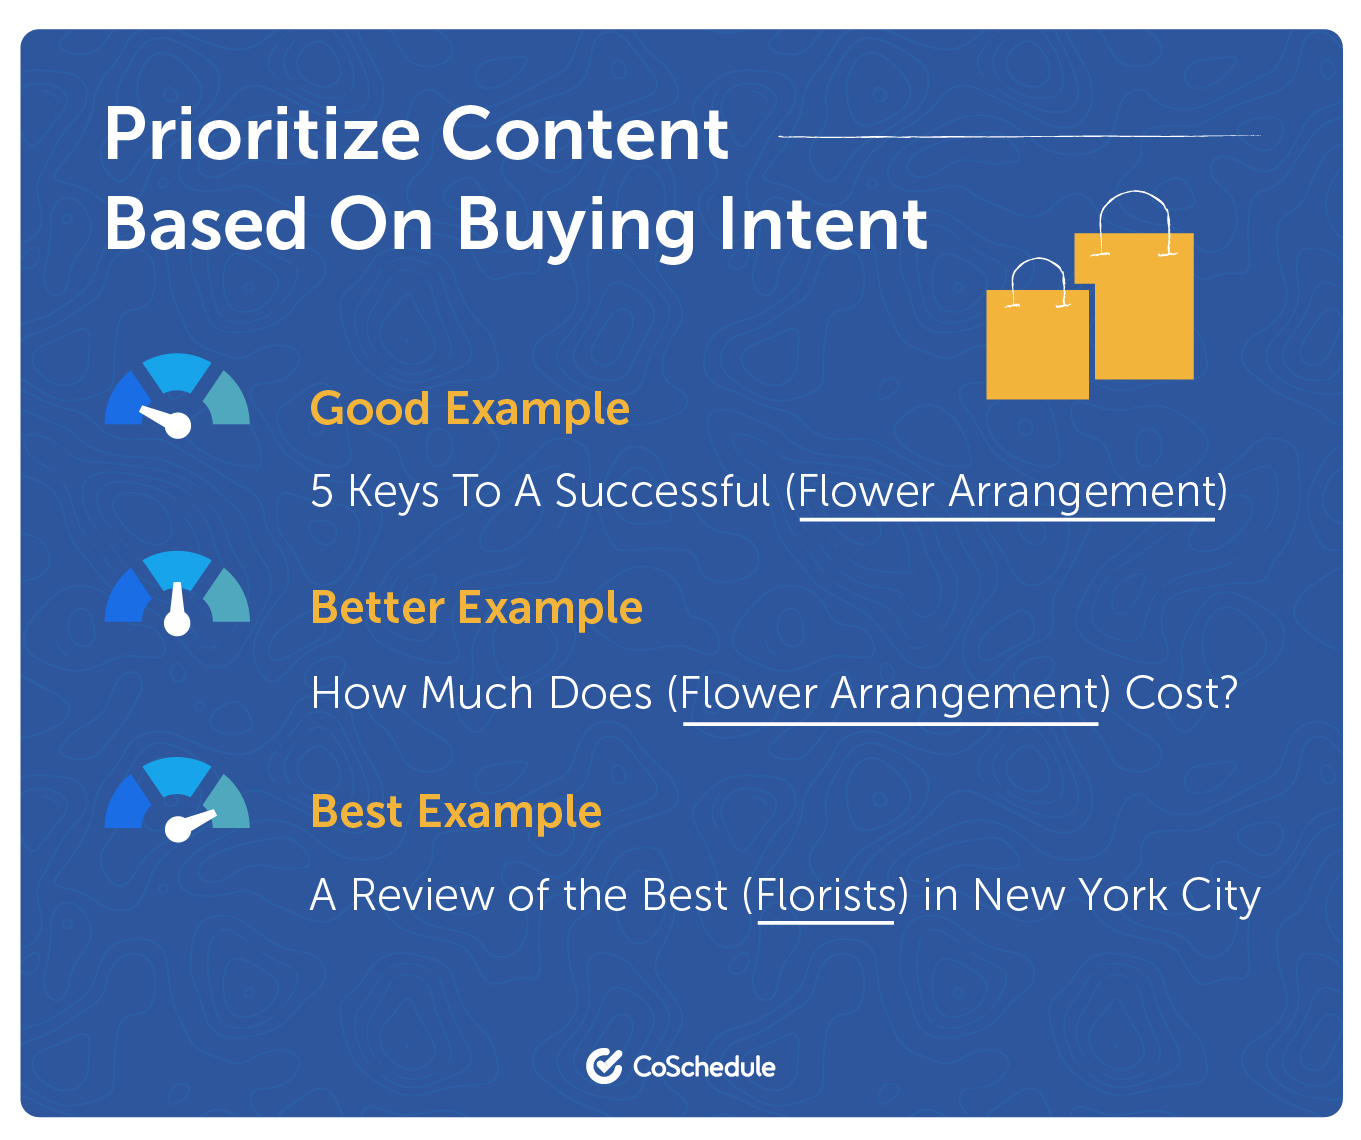 Prioritize based on buying intent